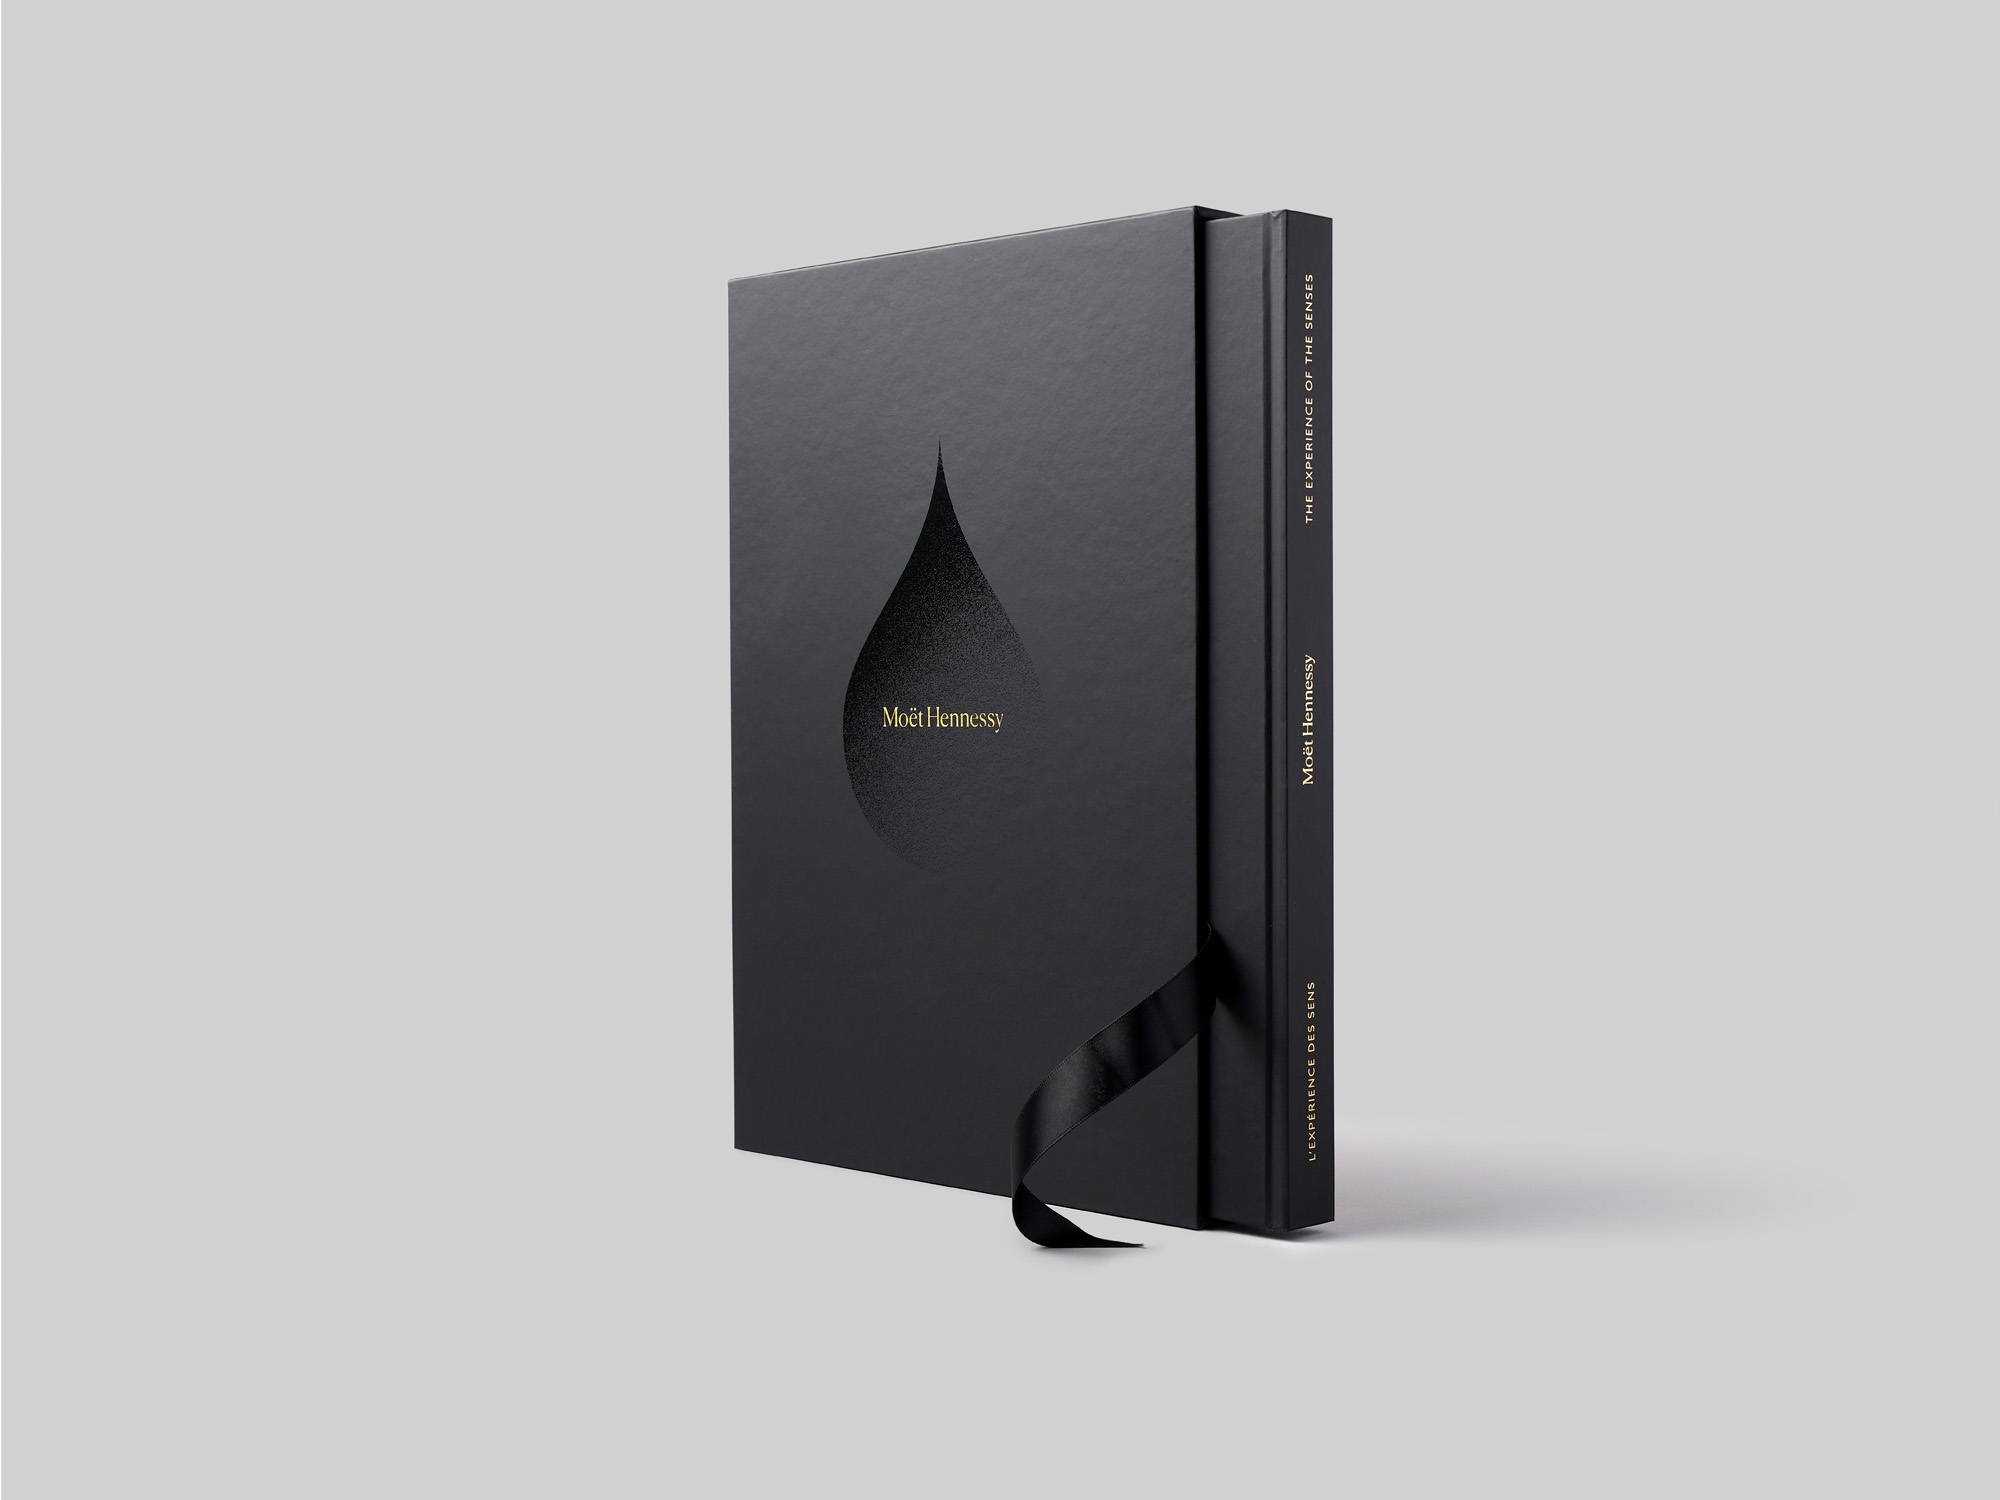 MOËT HENNESSYLimited Edition Book